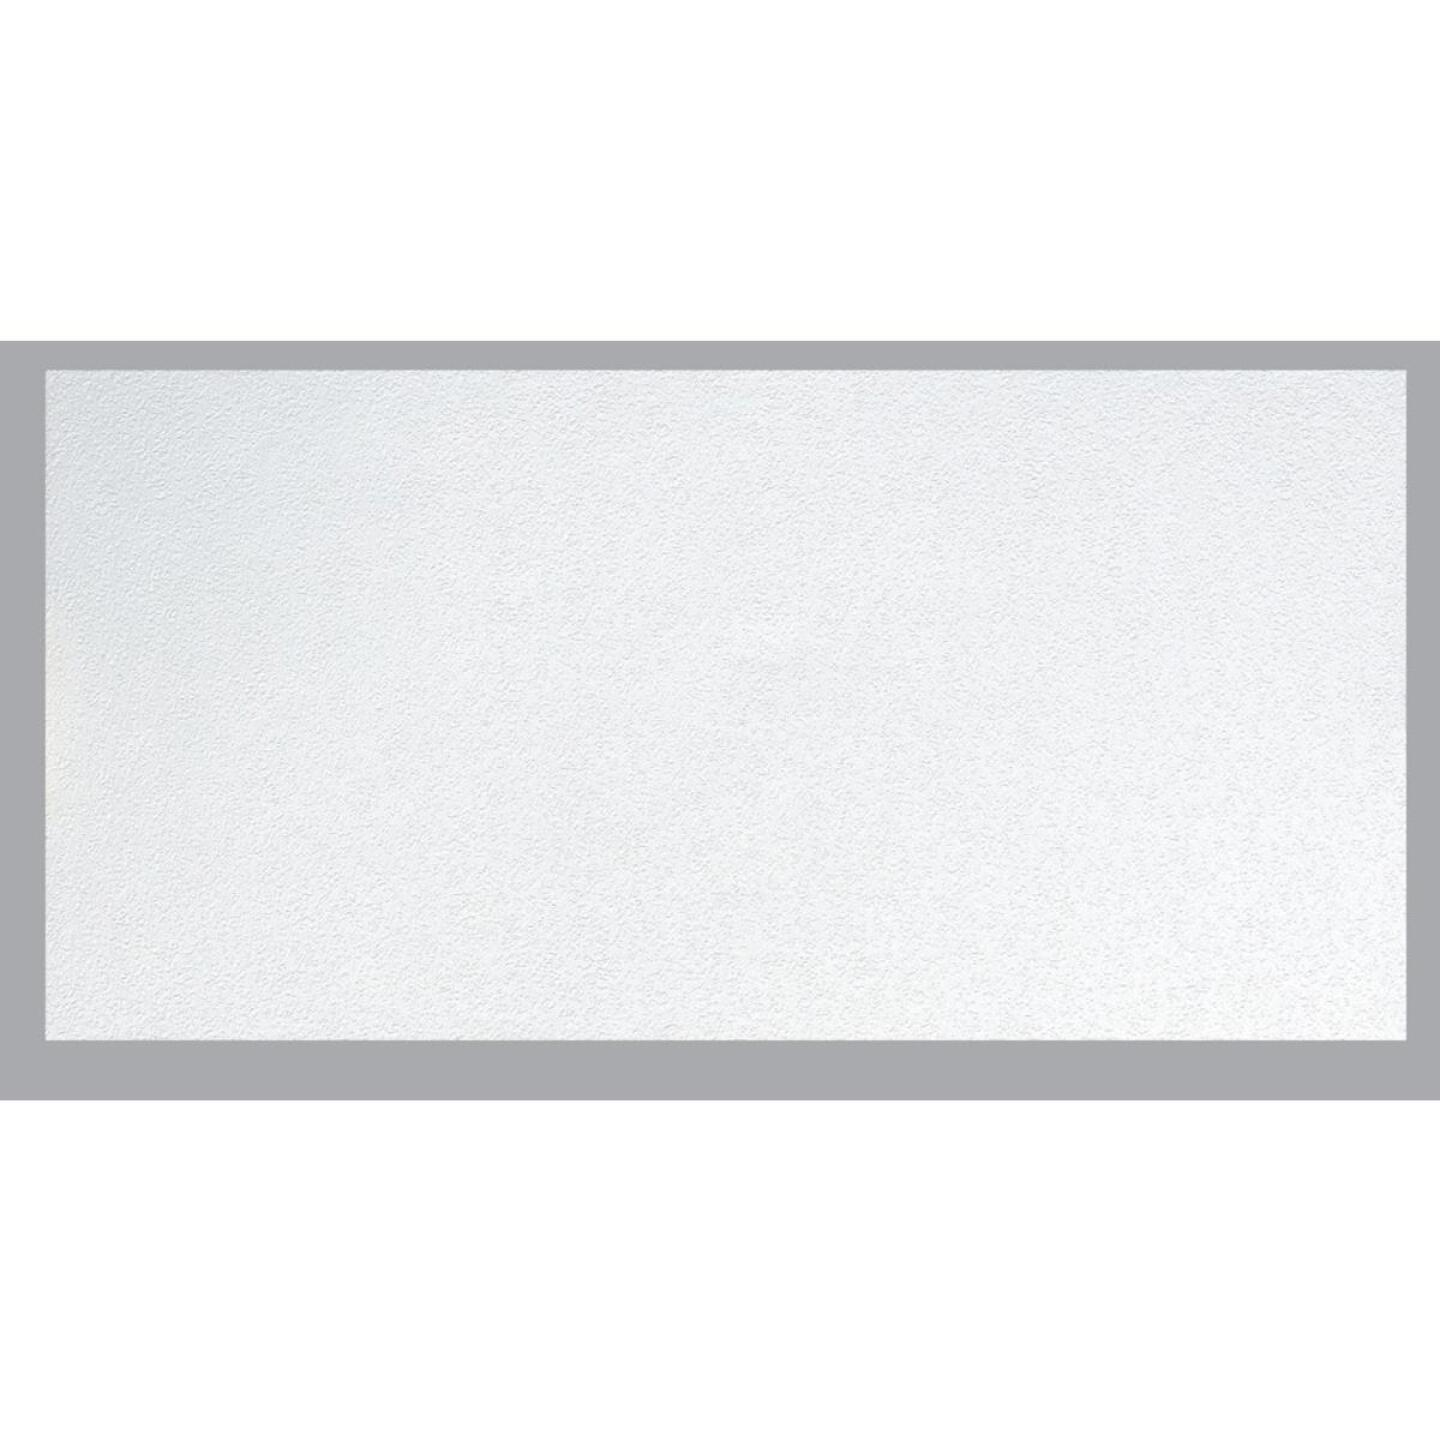 BP LifeStyle Fissured 2 Ft. x 4 Ft. White Wood Fiber Suspended Ceiling Tile (8-Count) Image 1